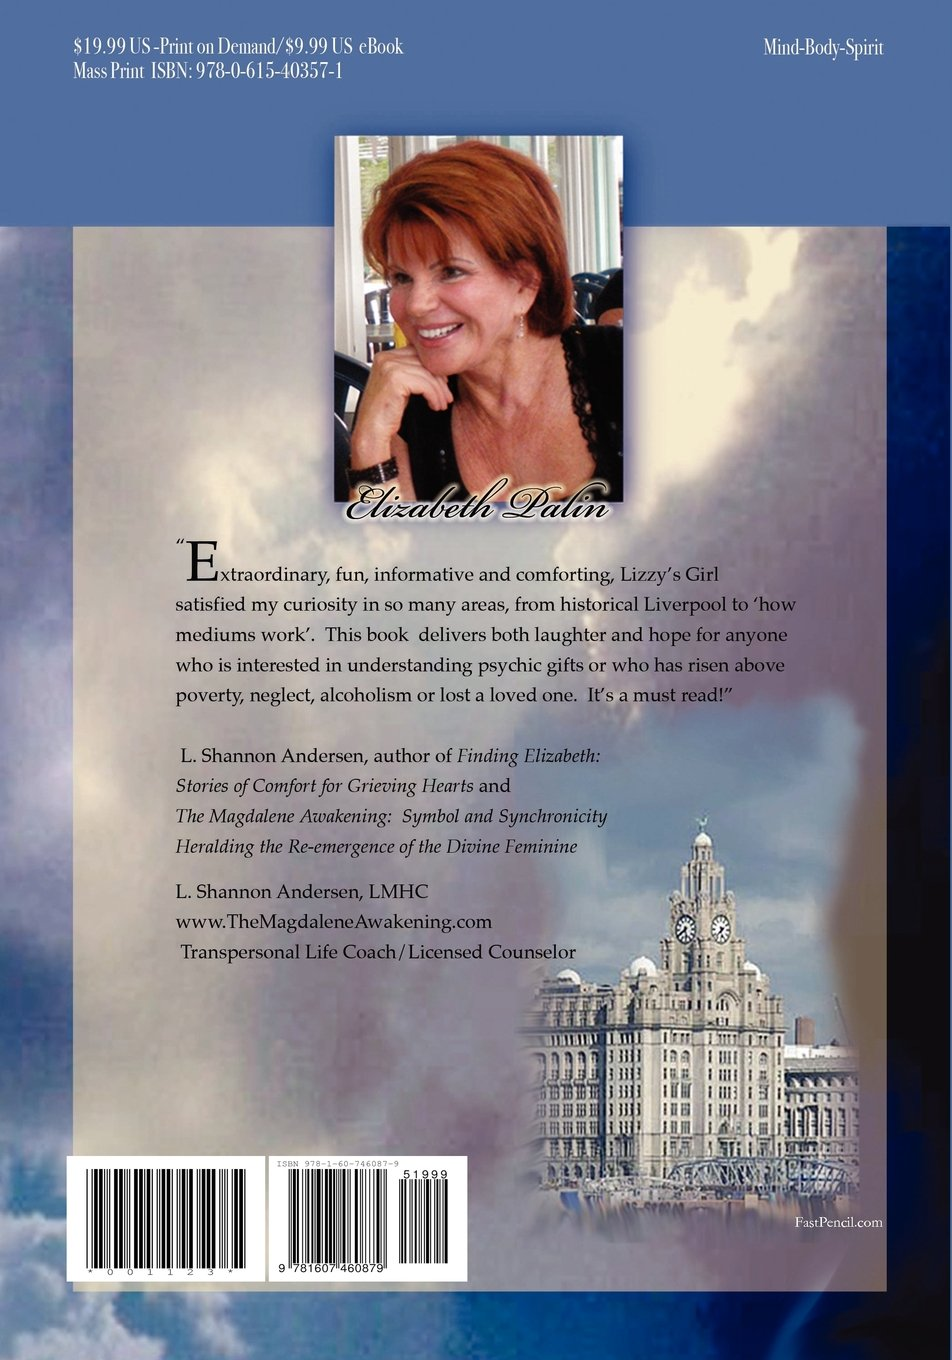 Lizzys girl the journey of a psychic medium elizabeth palin lizzys girl the journey of a psychic medium elizabeth palin 9781607460879 amazon books biocorpaavc Image collections